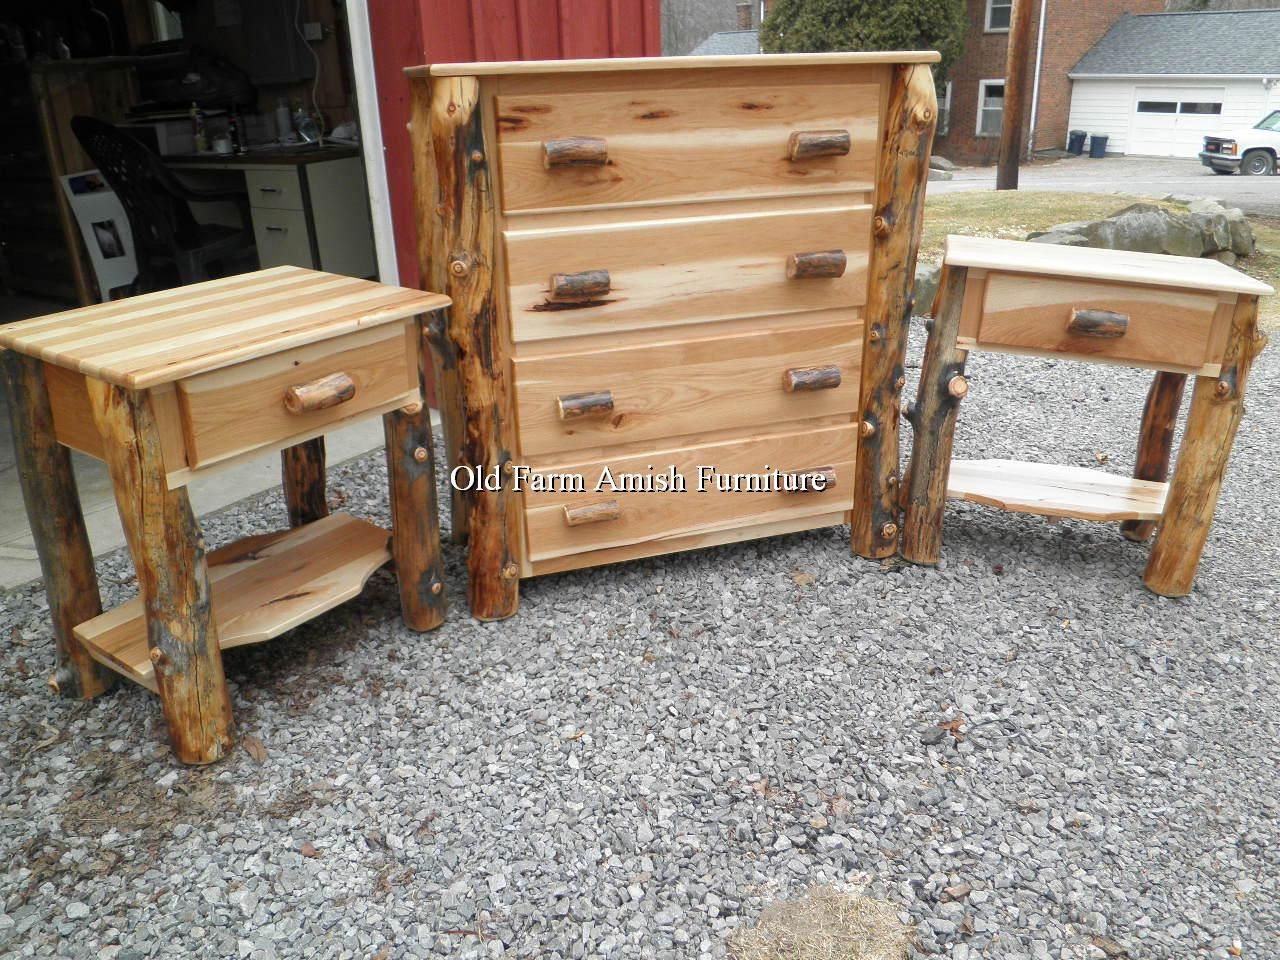 Aspen Log Chest Of Drawers Old Farm Amish Furniture Dayton Pa 814 257 8911 Oldfarmfurniture Aol Visit Our Facebook Page